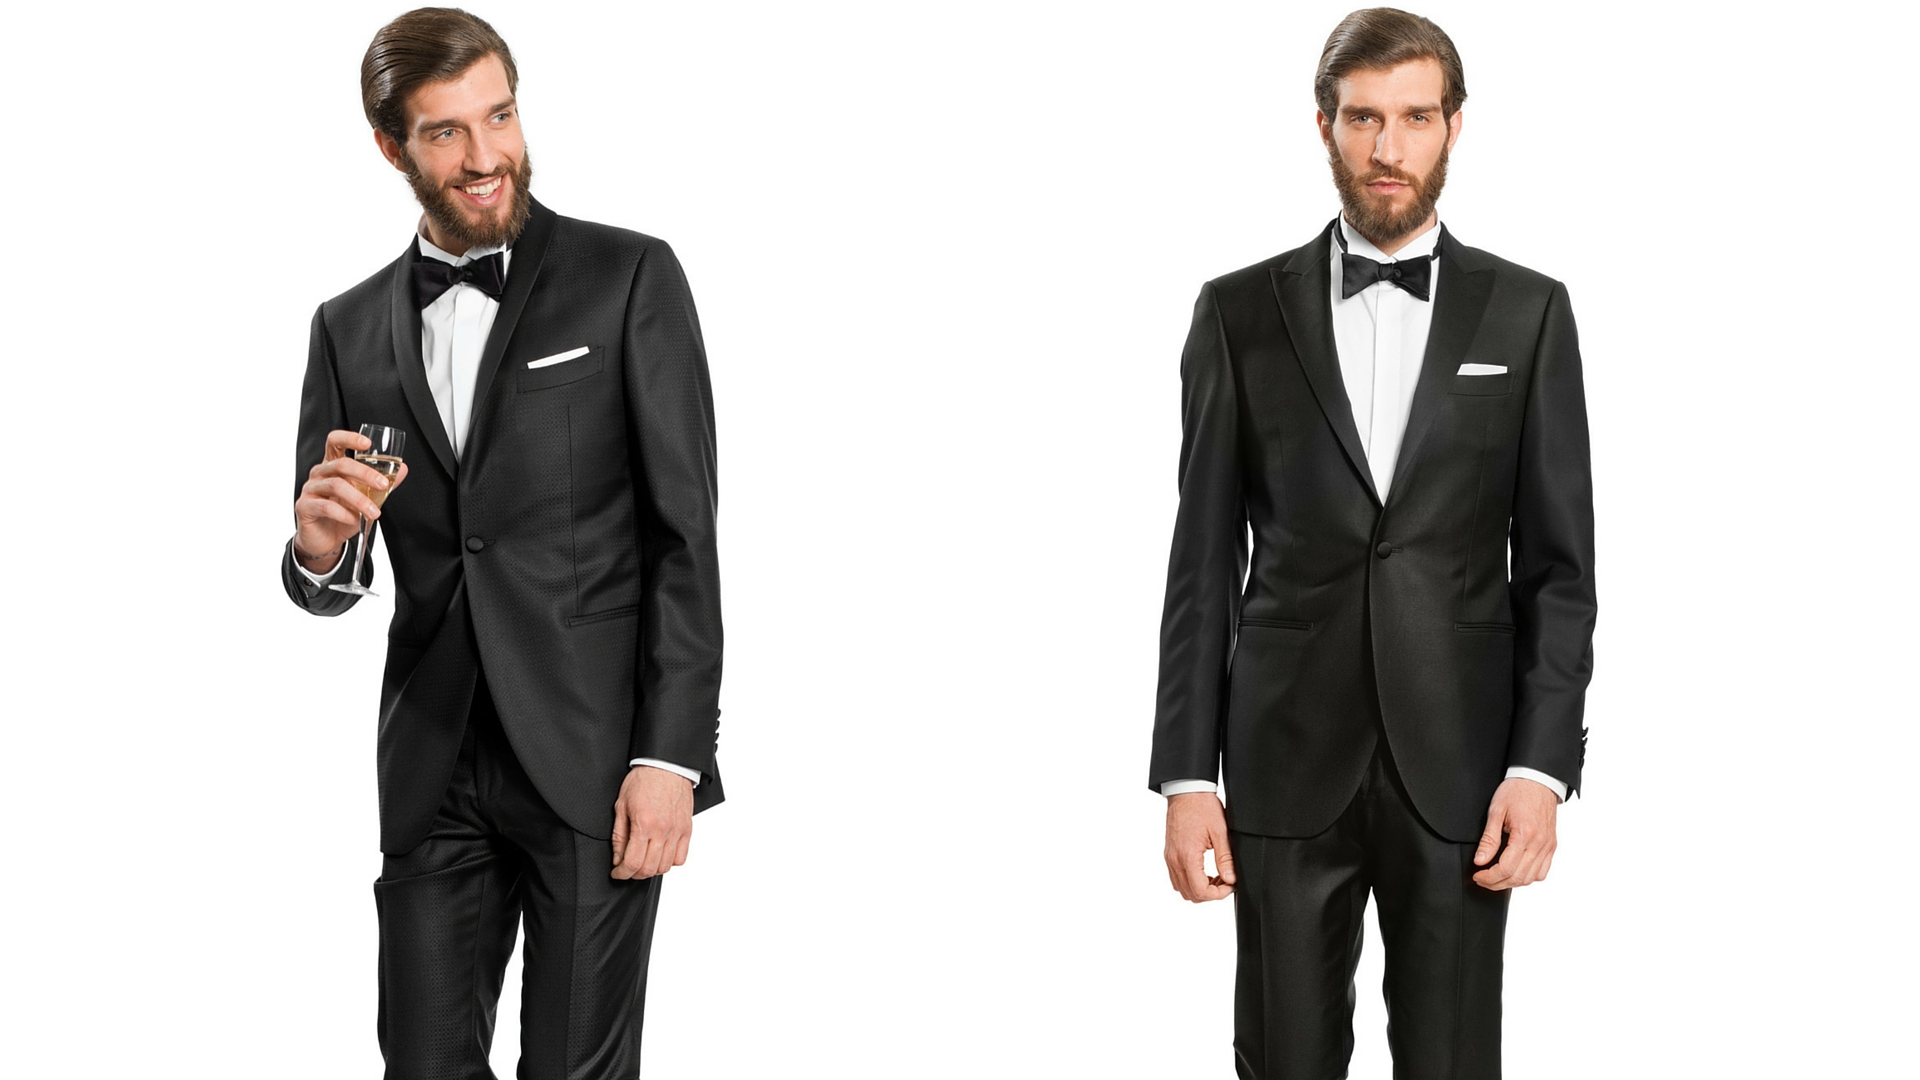 7791780f6e0 The tuxedo etiquette  do s and don ts. How to wear a tux